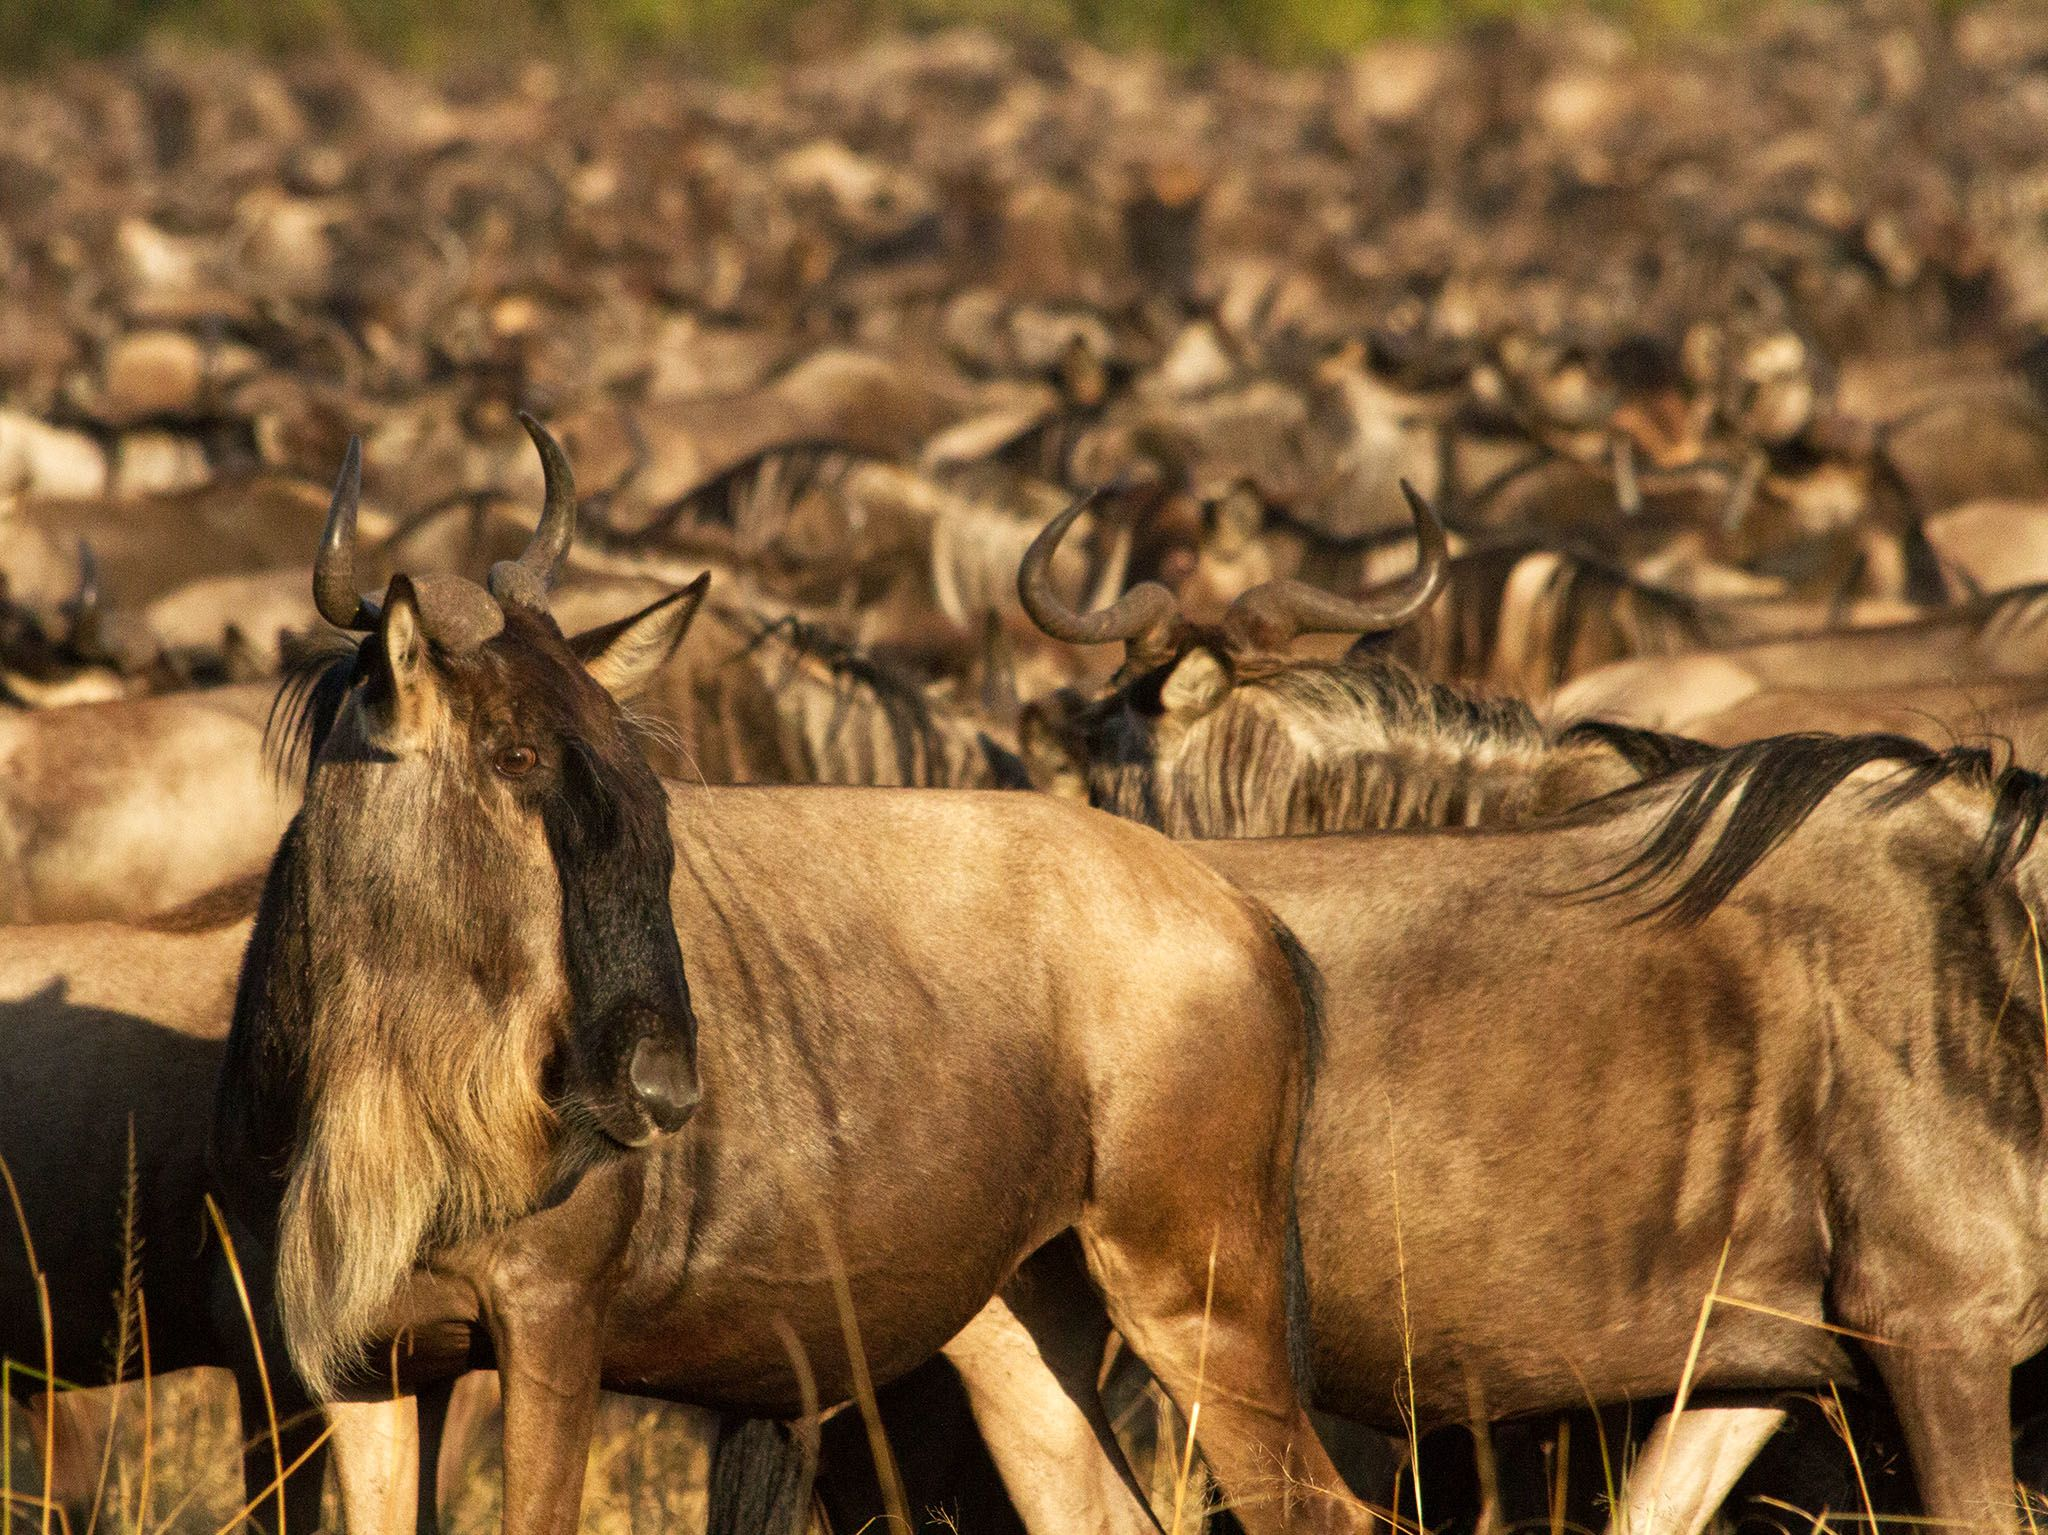 Kenya: Large herd of wildebeest waiting and gathering before crossing the Mara River. This image... [Photo of the day - ژانویه 2017]